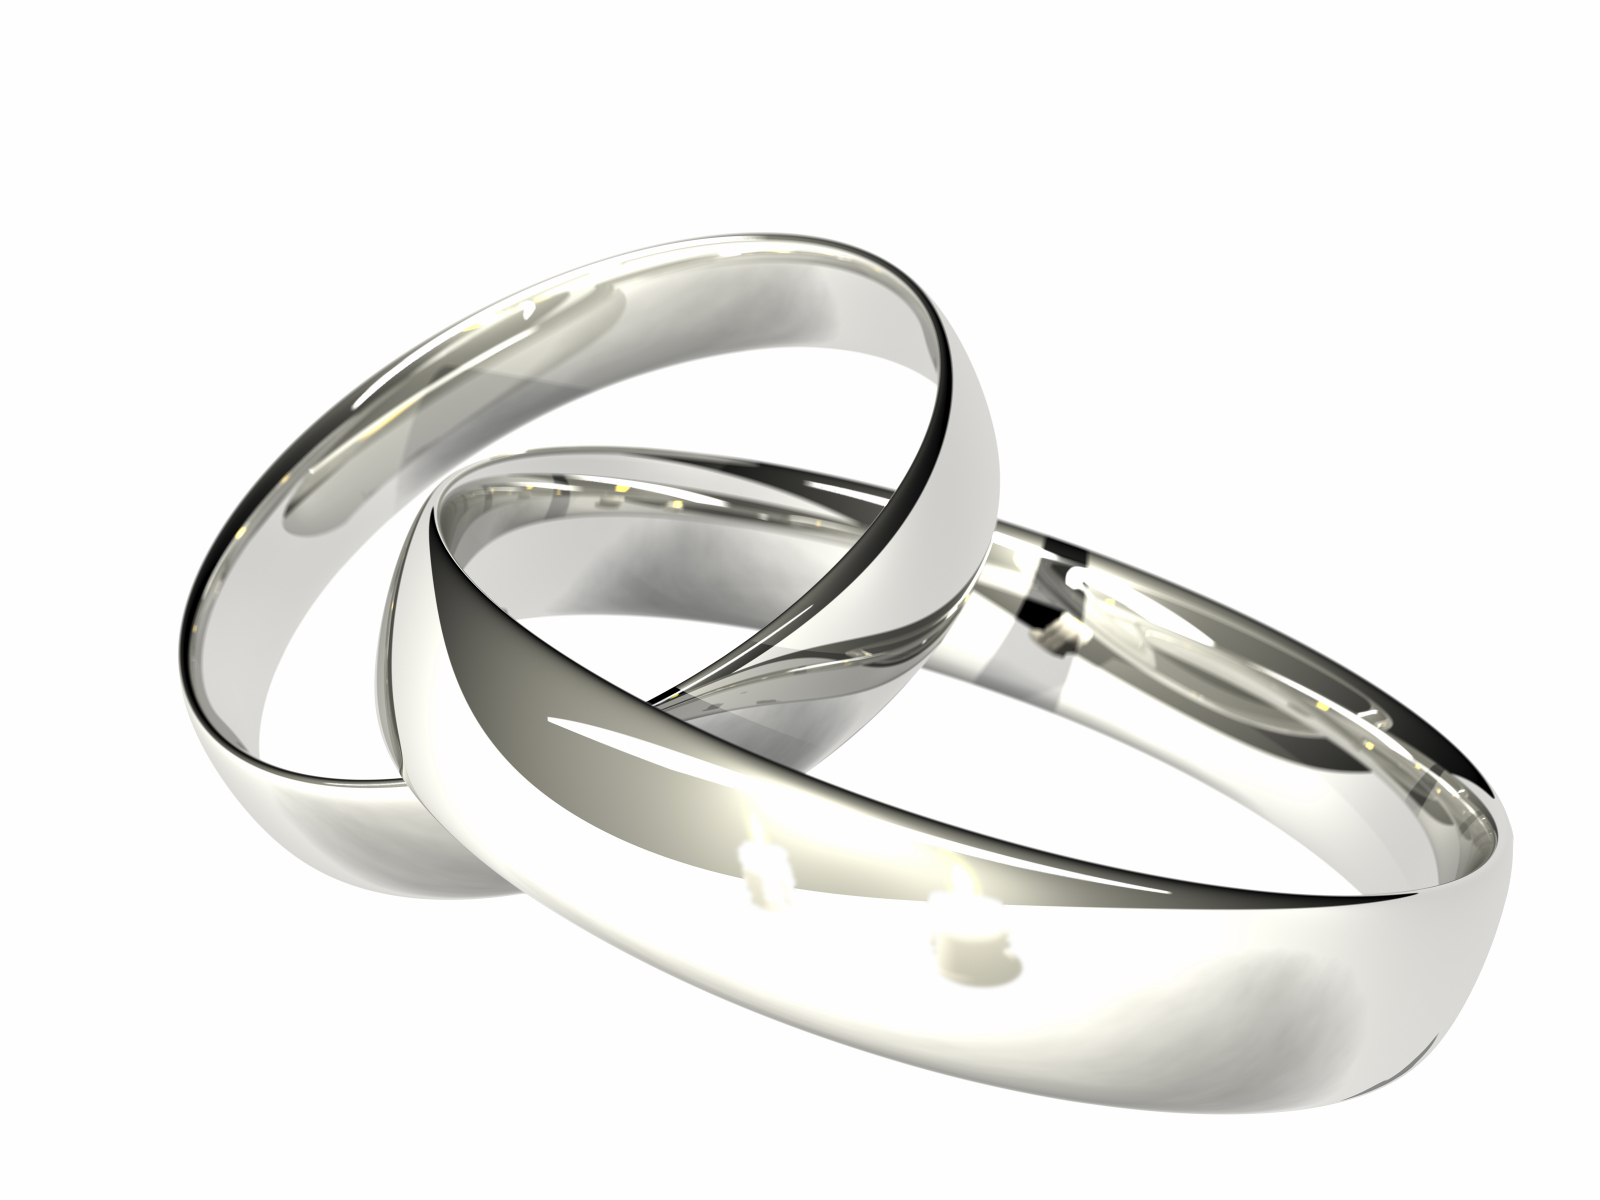 wedding pictures wedding photos silver wedding rings pictures With pictures of silver wedding rings